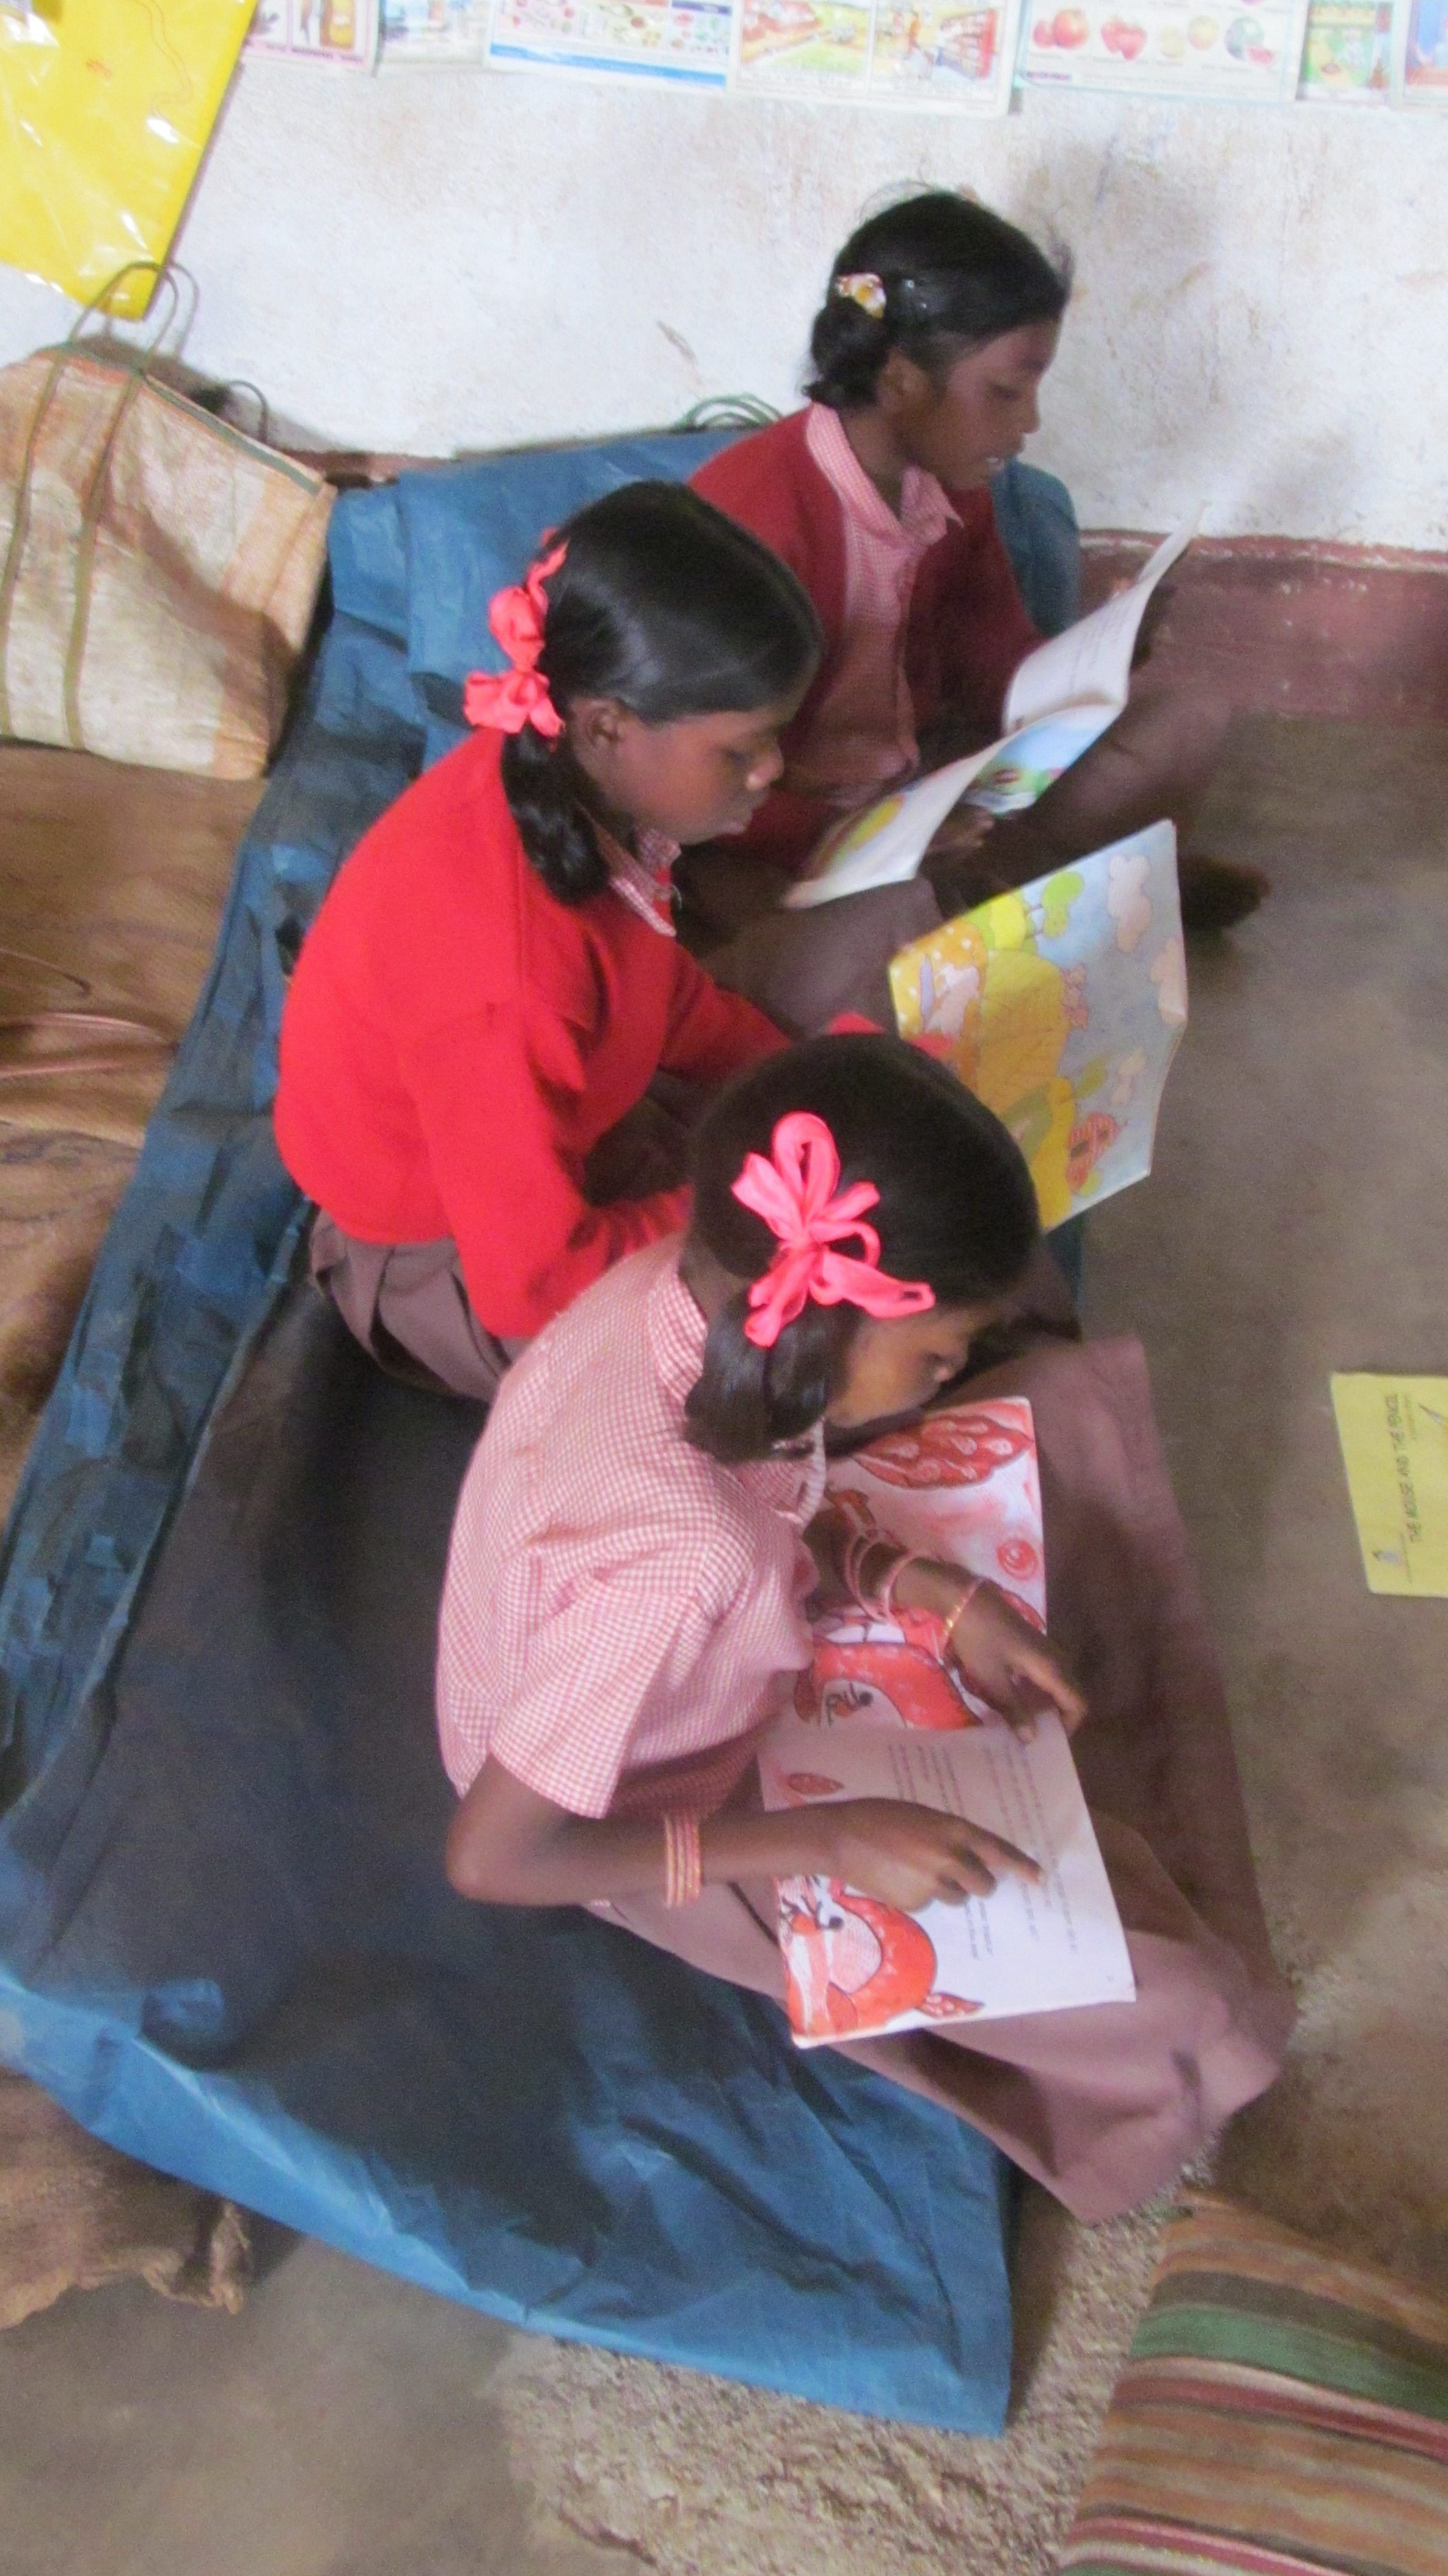 Children reading books written in Mundari, a langauge spoken by the Munda tribe of Eastern India.